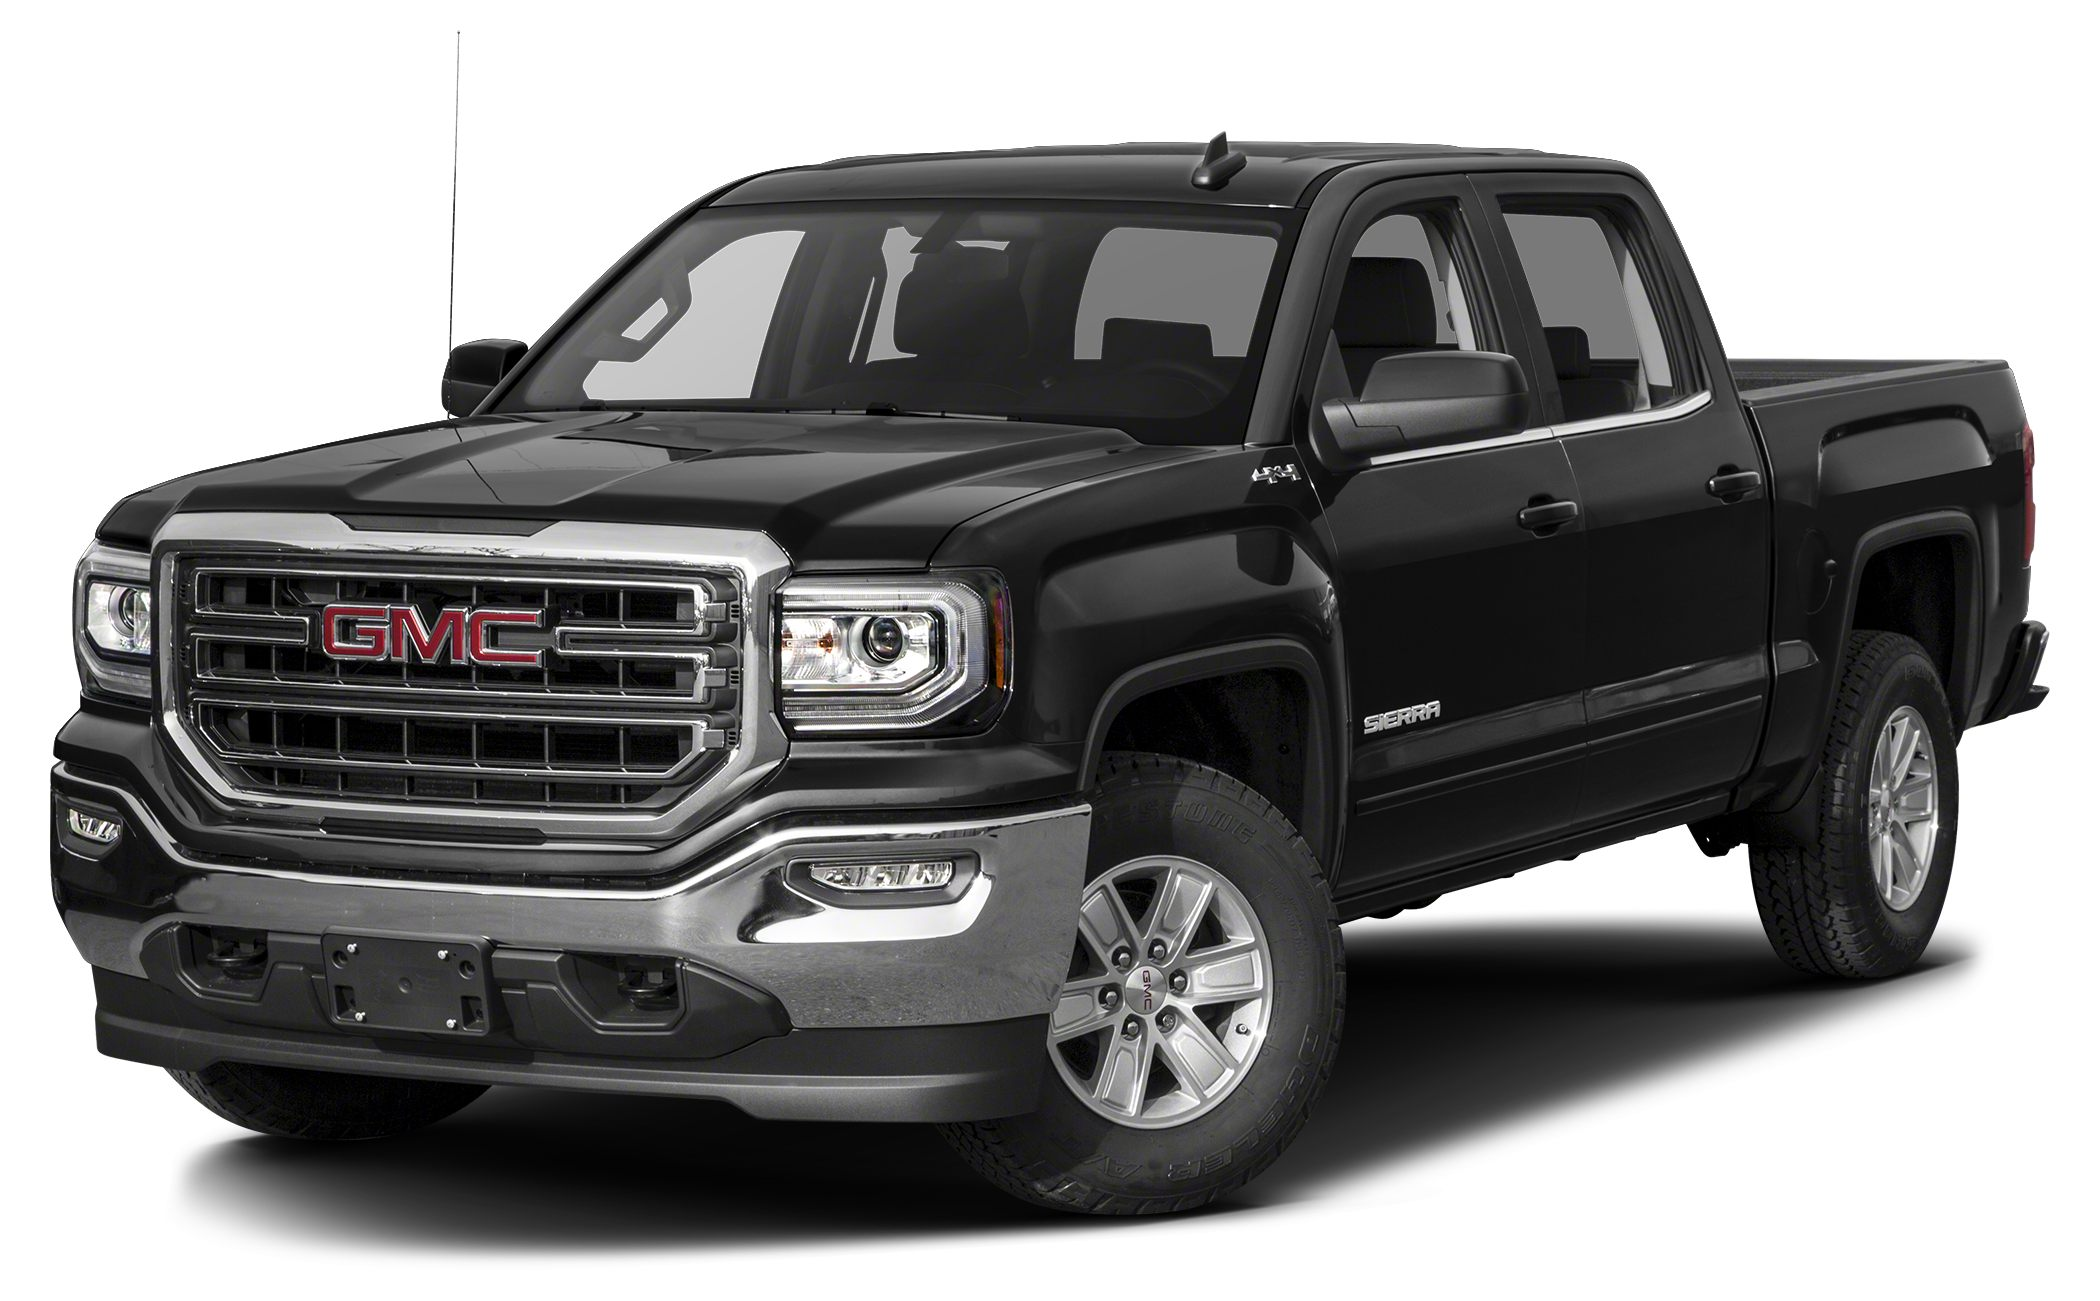 2018 GMC Sierra 1500 SLE This 2018 GMC Sierra 1500 SLE is a great option for folks looking for top